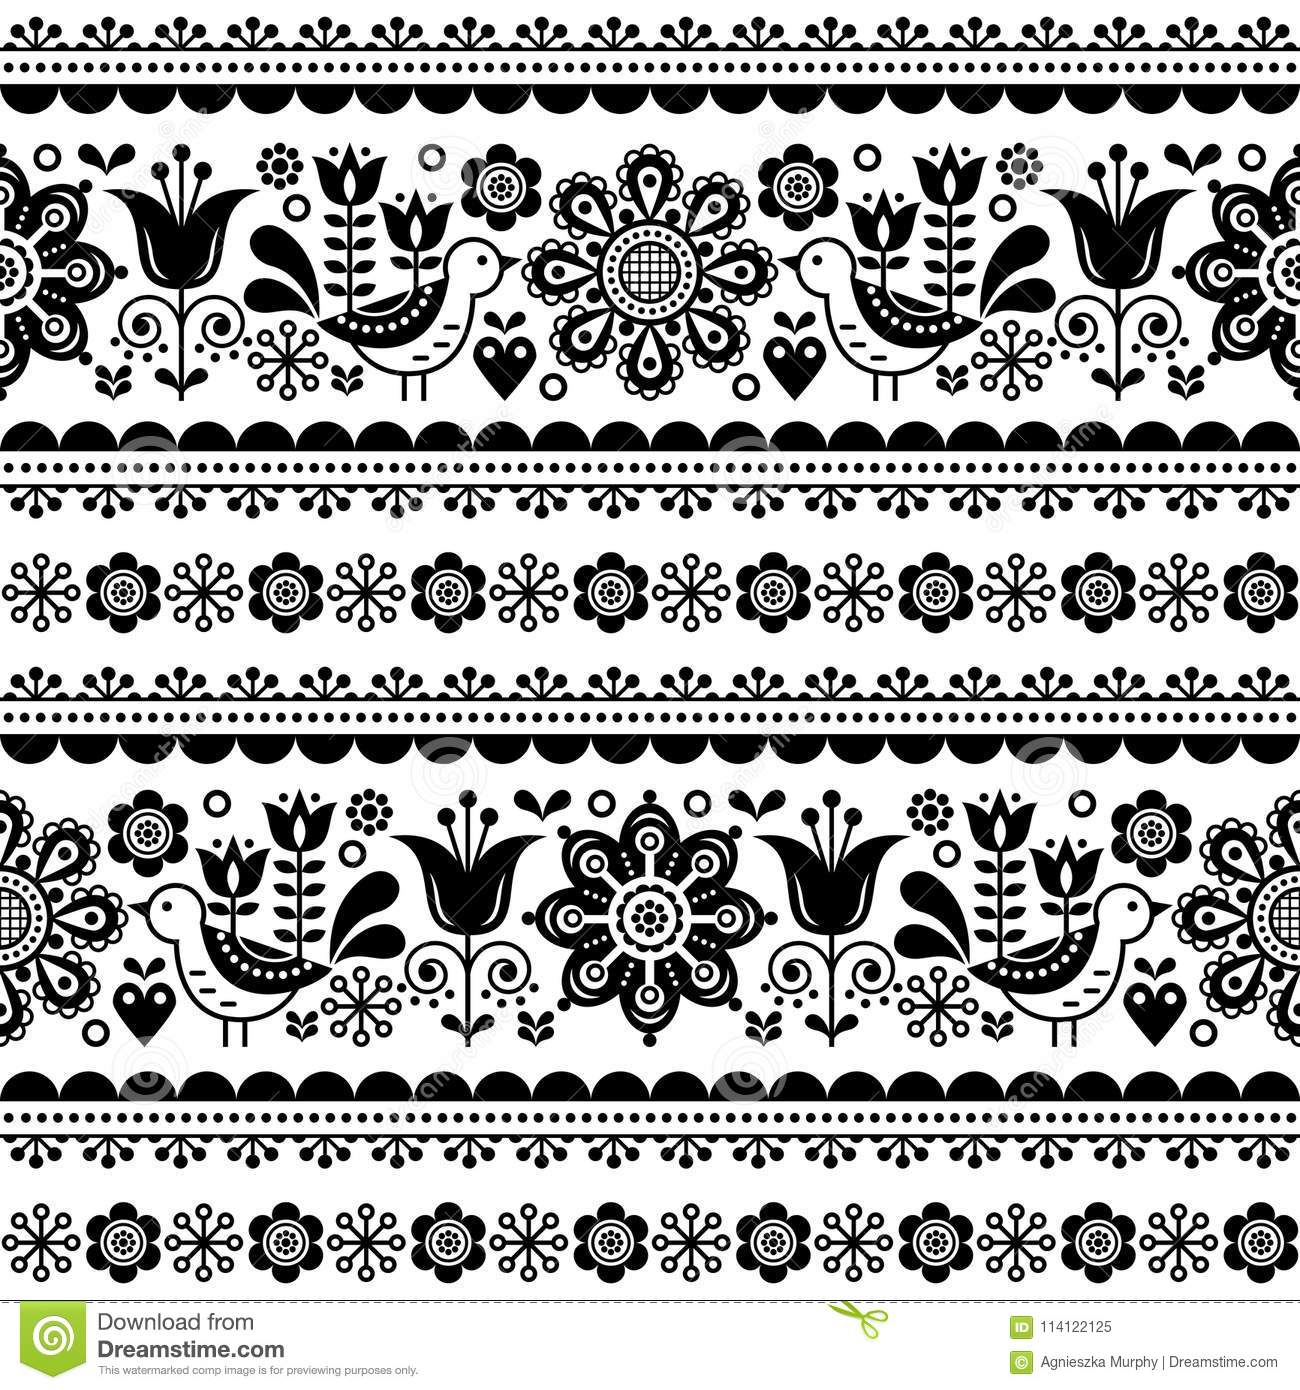 Indian Trucks Art Seamless Pattern Pakistani Colorful Truck Floral Design With Lotus Flower Leaves And Abstract Shapes Stock Illustration Illustration Of Abstract Ornament 114122125